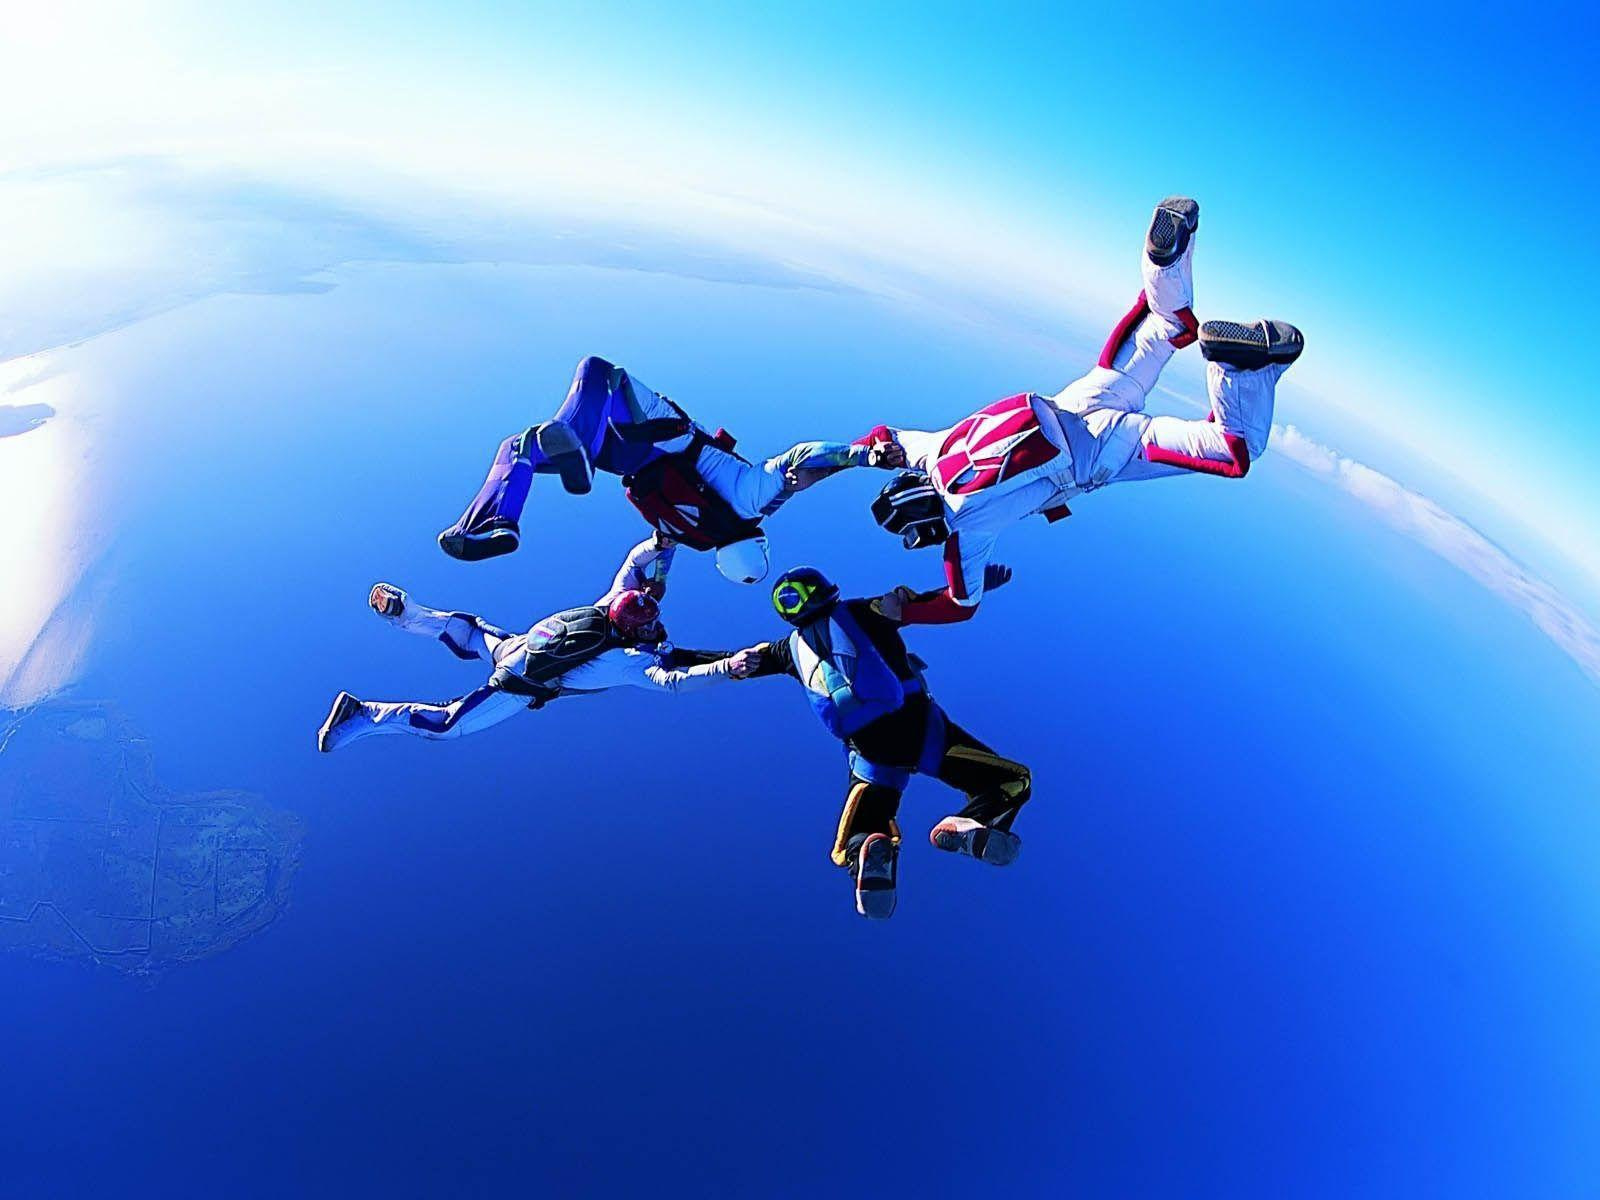 Skydiving Wallpapers High Quality | Download Free